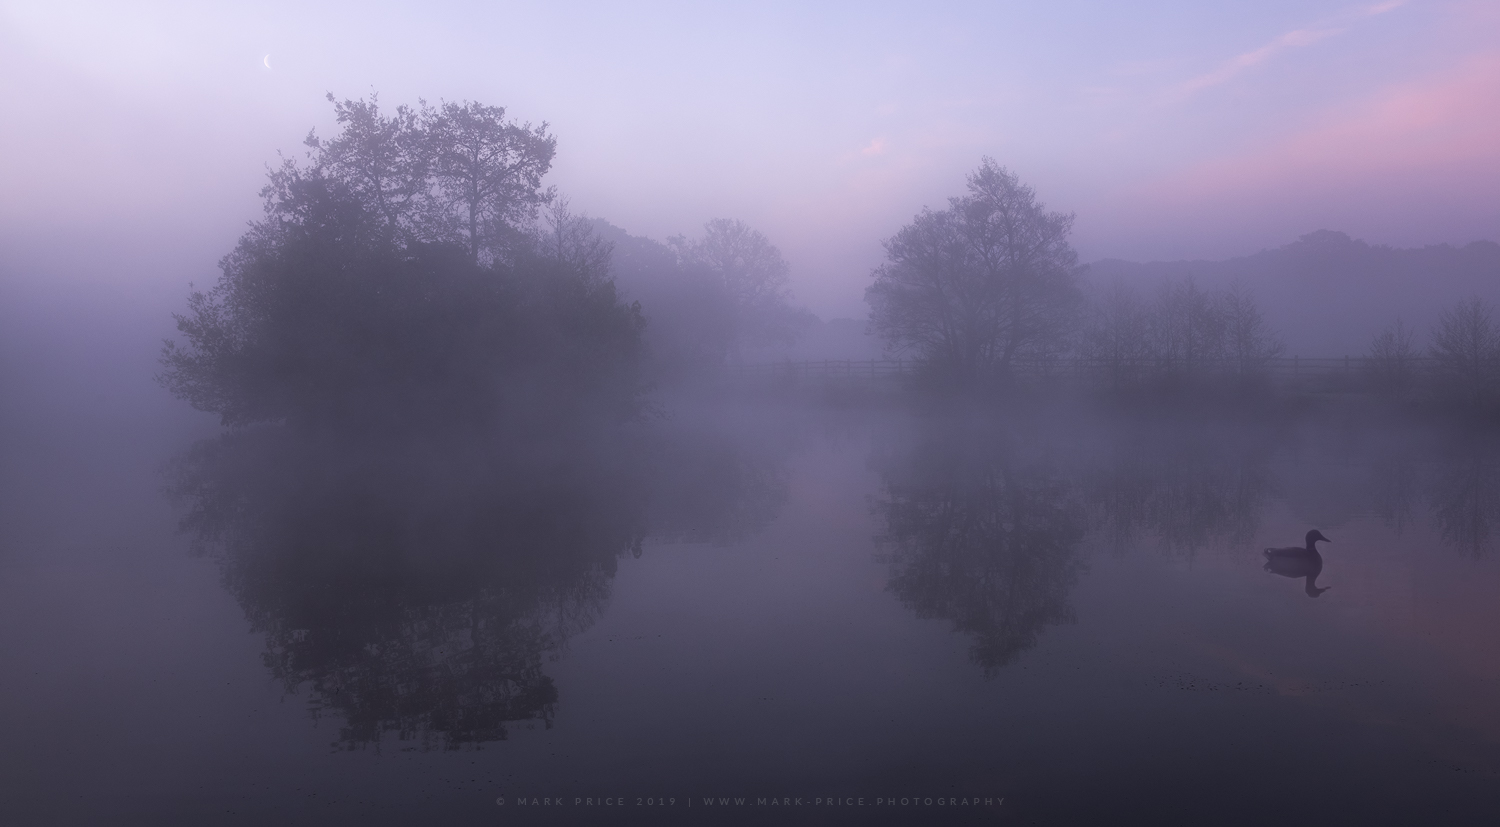 Pre-dawn tranquility at a Sussex lake